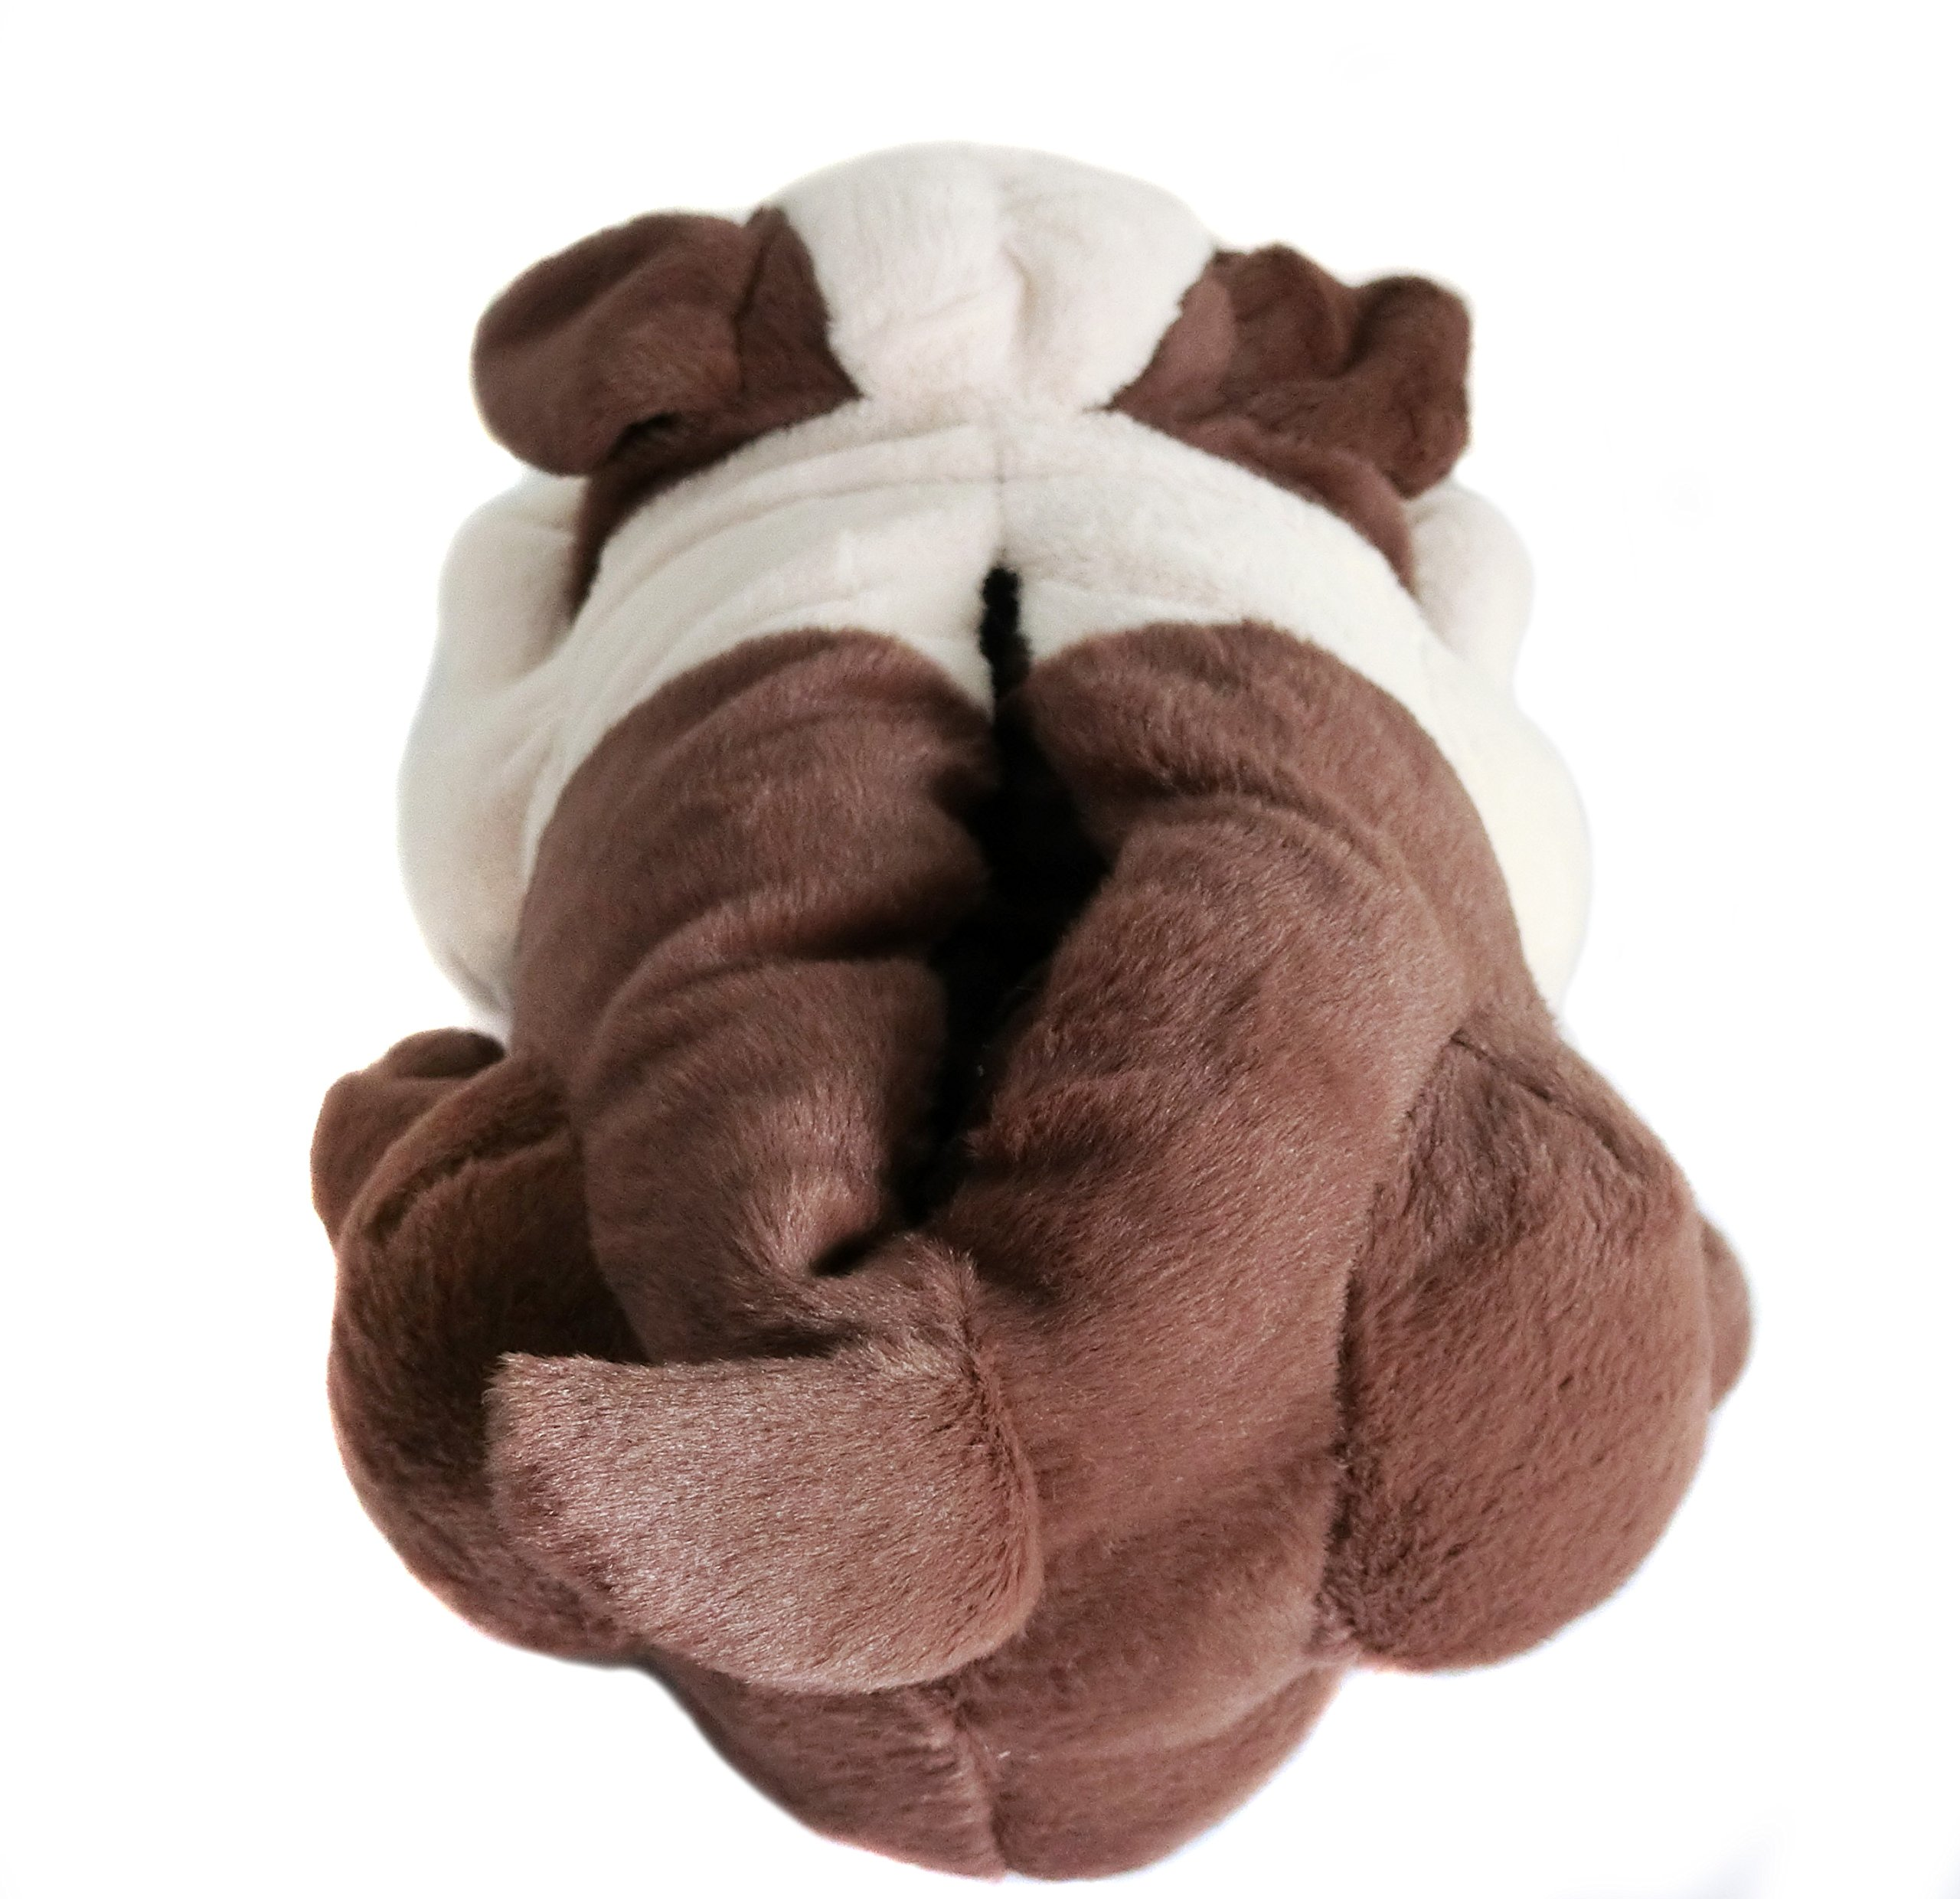 Fuzzy Winter Indoor Animal Bulldog Slippers for Adult and Kid, Bull Dogs (US Women Size 7-9, Coffee Bulldog) by Onmygogo (Image #6)